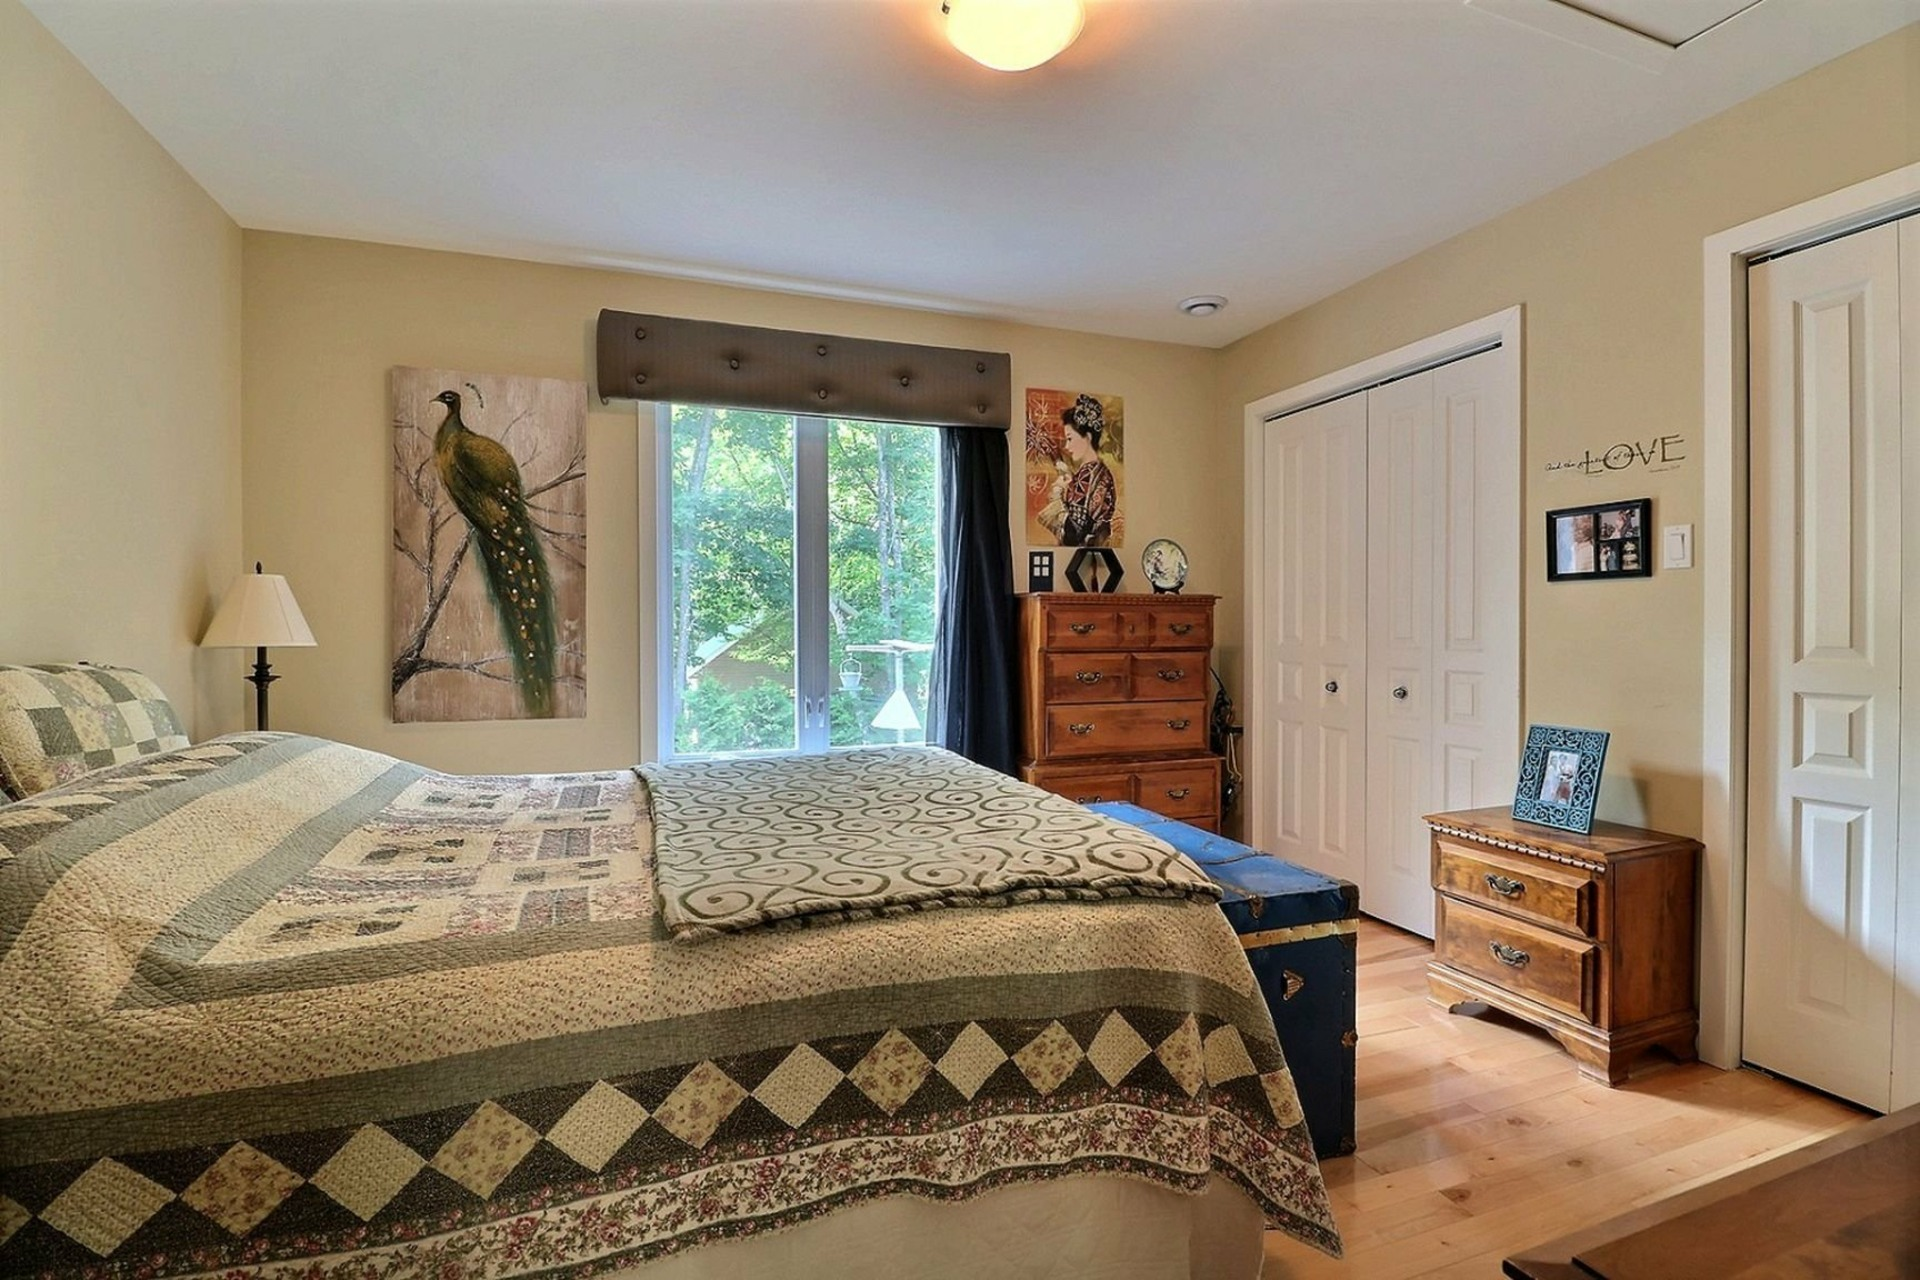 image 8 - House For sale Rawdon - 6 rooms